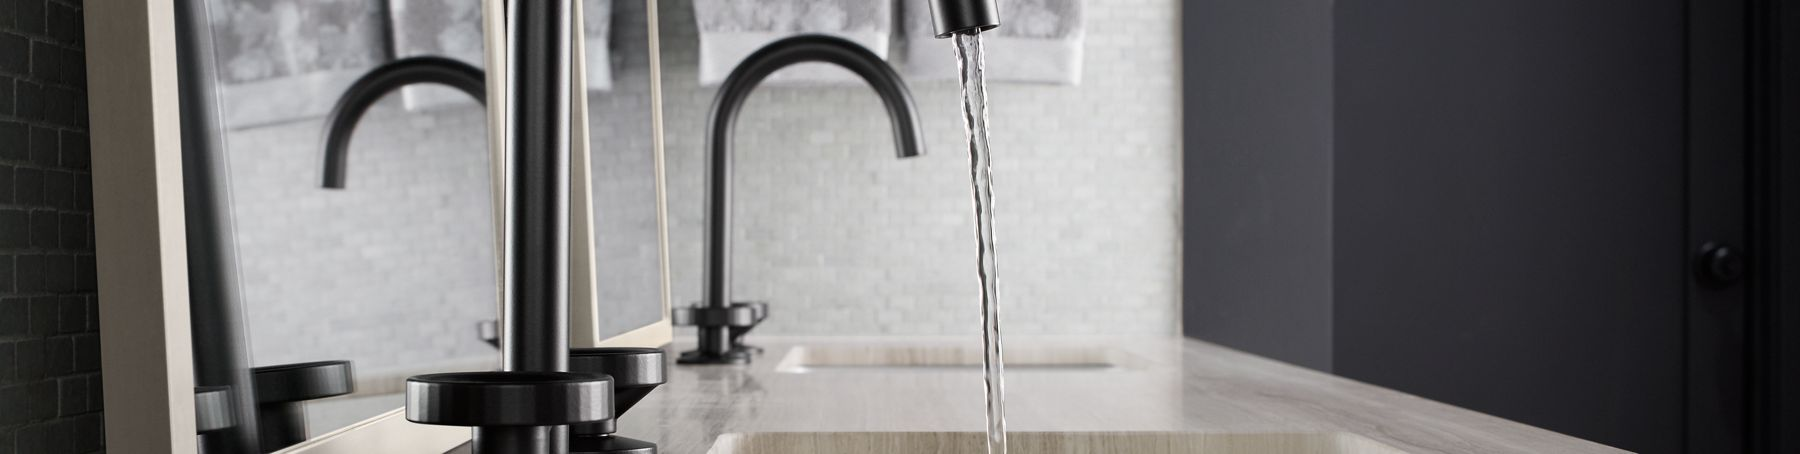 Make a stylish statement and save 25% on a new bathroom faucet. Use coupon code FAUCET25 at checkout.